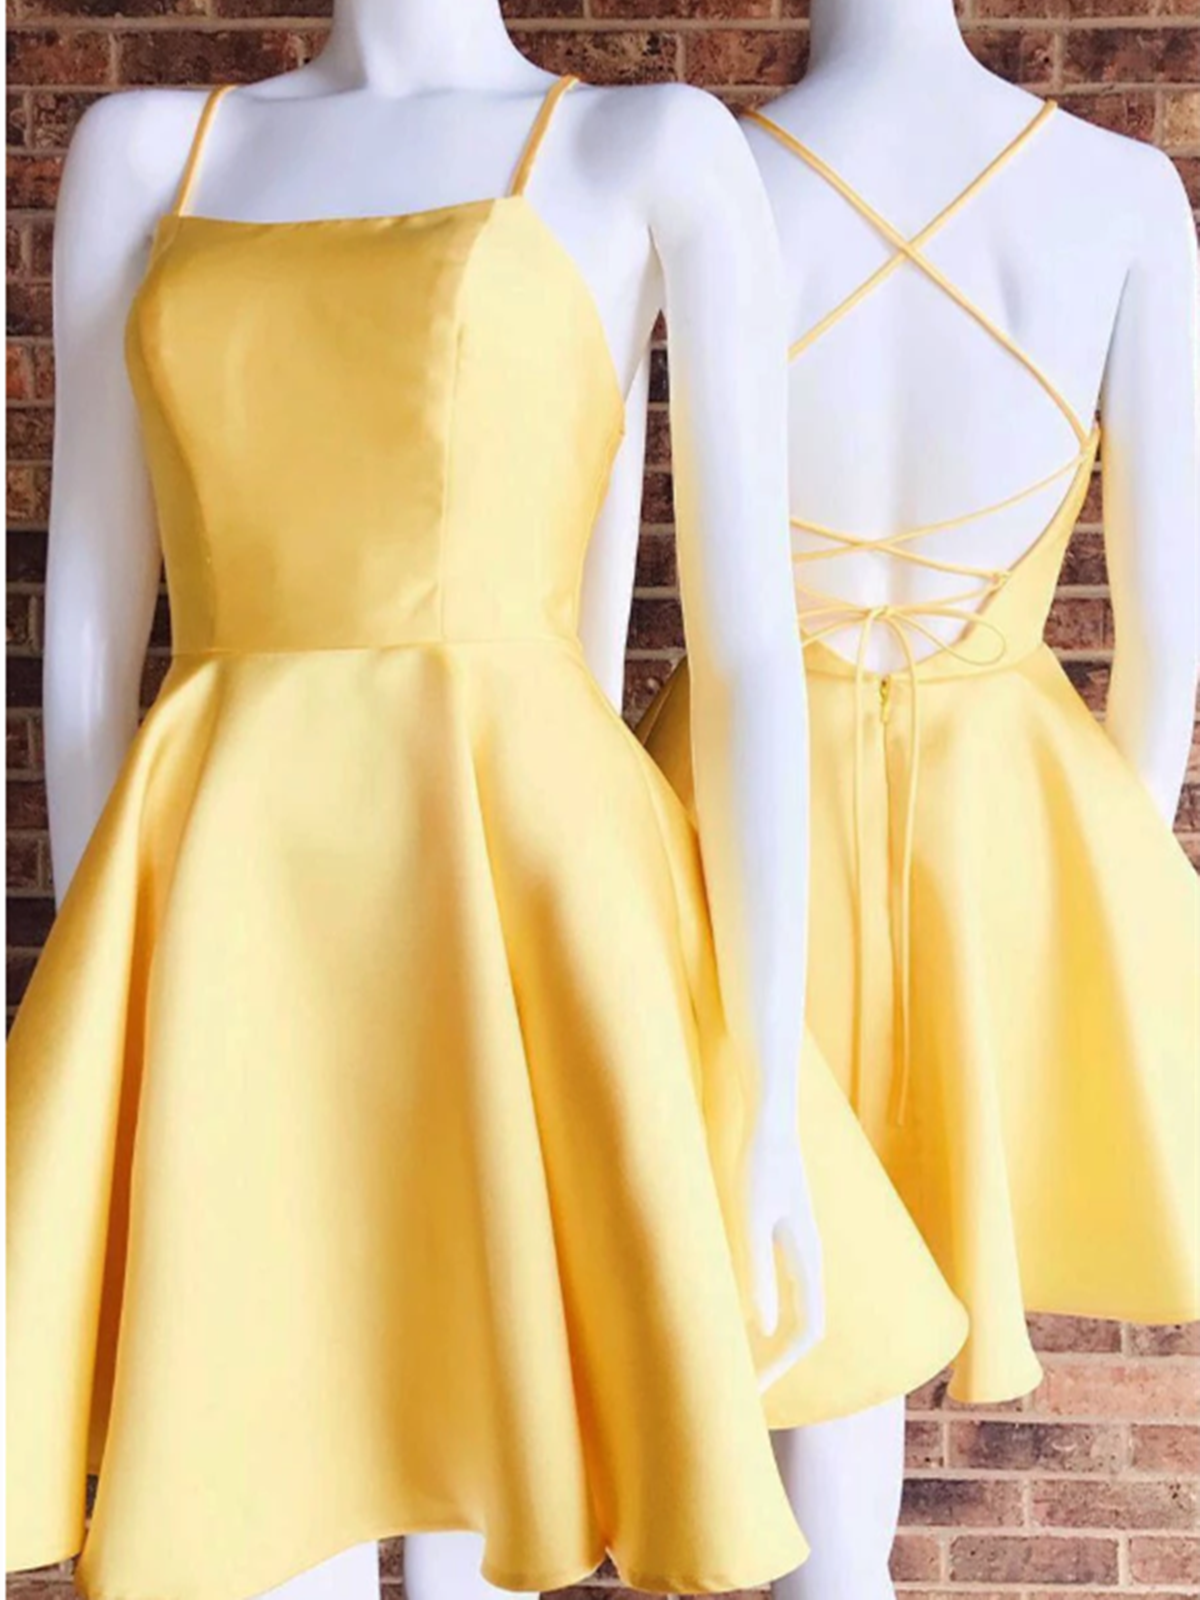 Custom Made Yellow Spaghetti Straps Short Satin Prom Homecoming Dress , Short Backless School Dance Dress Customized service and Rush order are available. For custom-made color, please leave the color number before the color chart (The color chart is in the products\u00a0listing\u00a0pictures) to us. If you are not custom color, please ignore this. For custom-made size, please leave us your following size (Measuring Guide is in the #shortbacklessdress